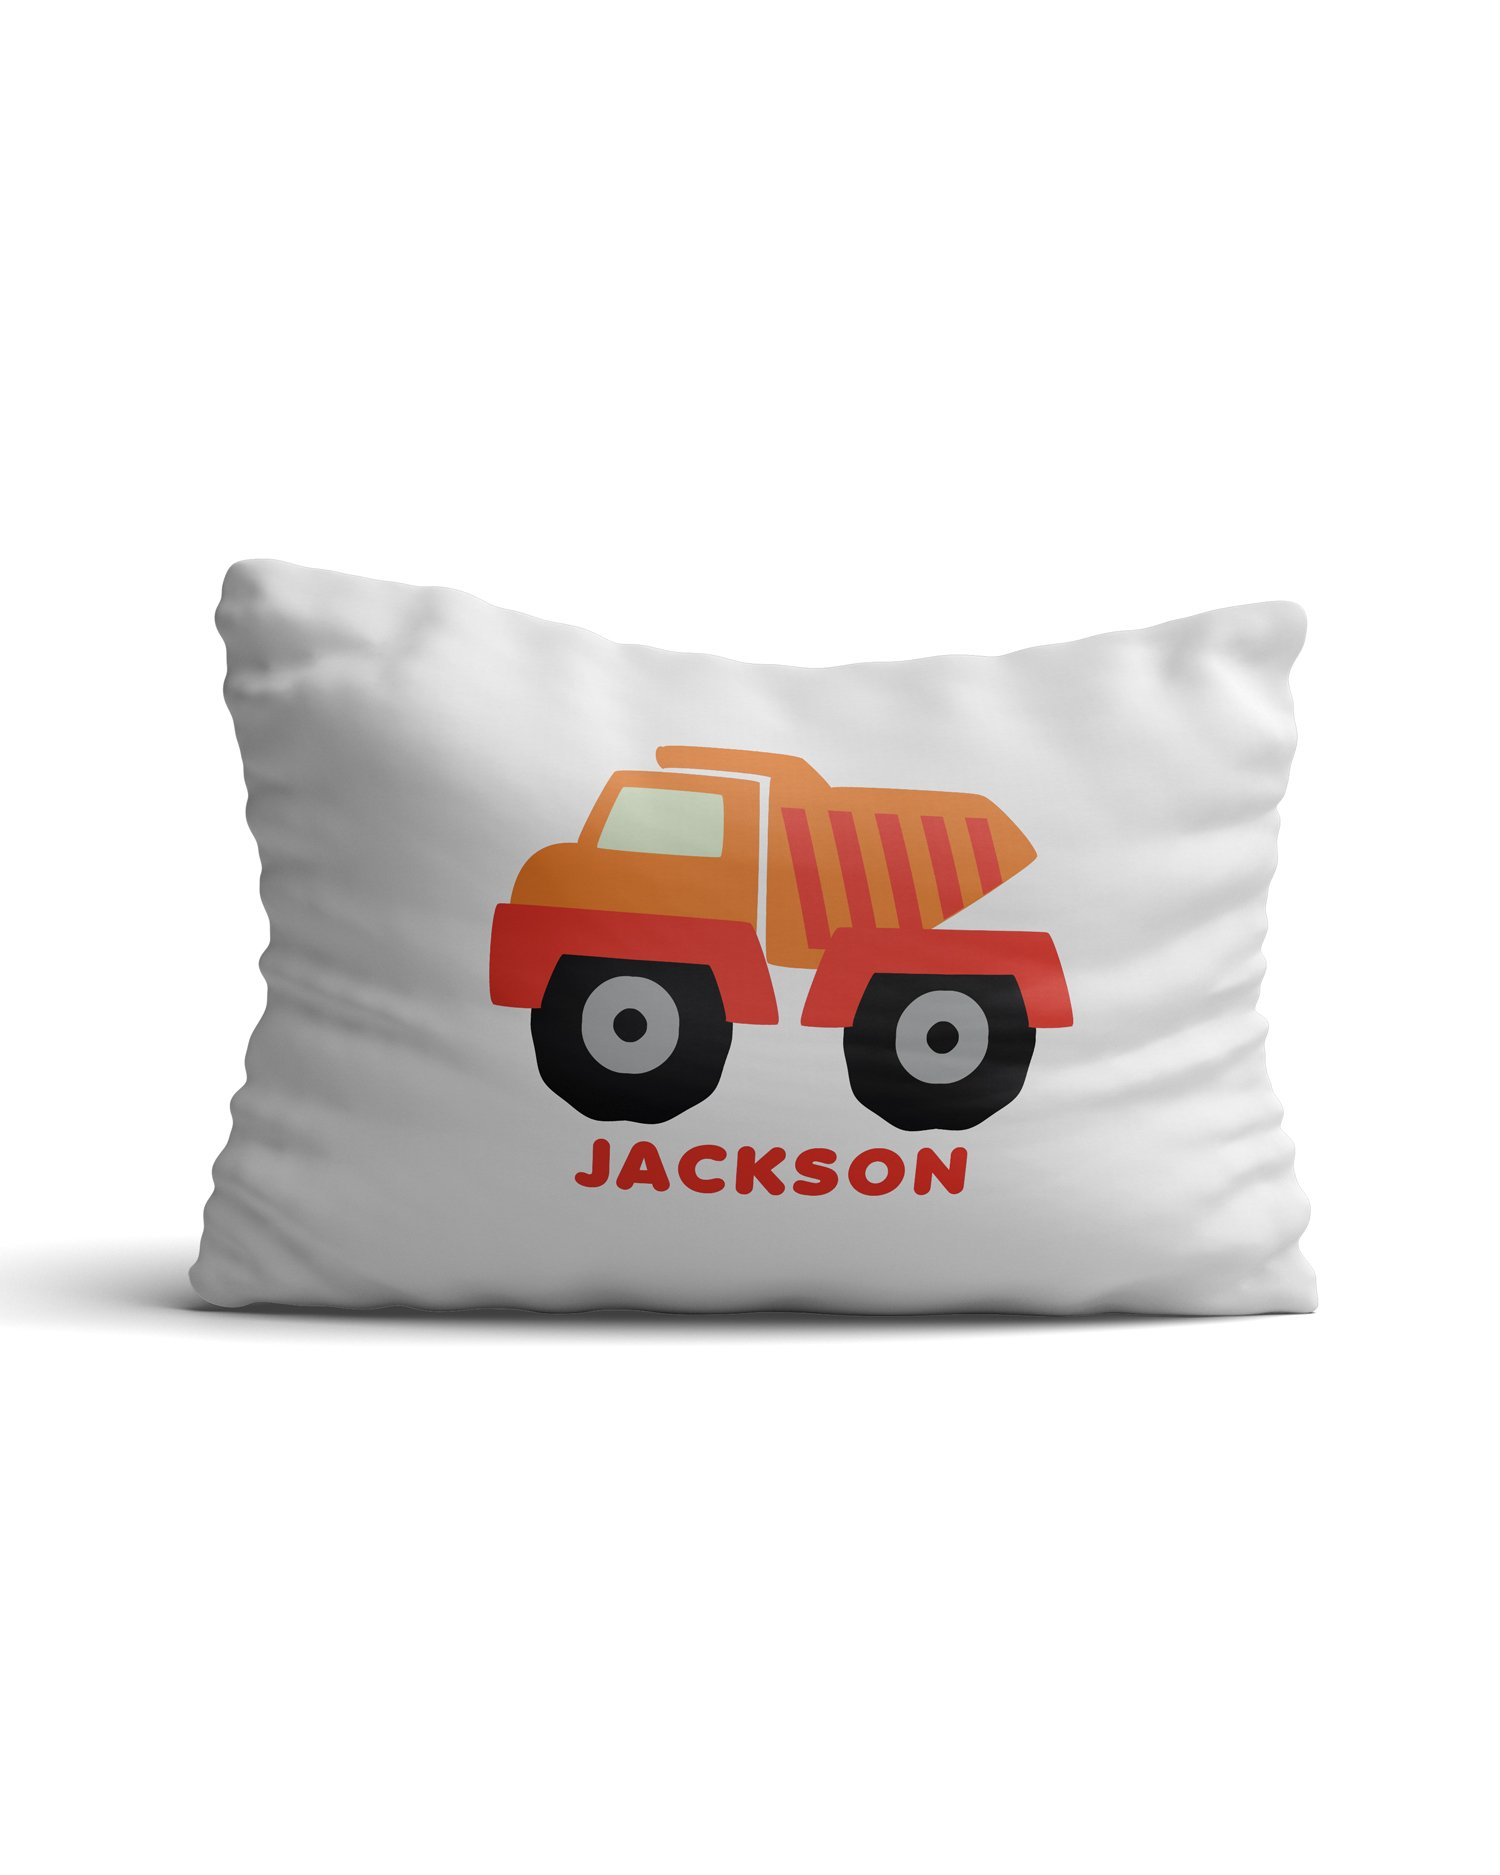 Desert Cactus Personalized Custom Kids' Pillowcase with Name Dump Truck Boy Version Boys & Girls Pillow Case Bedroom